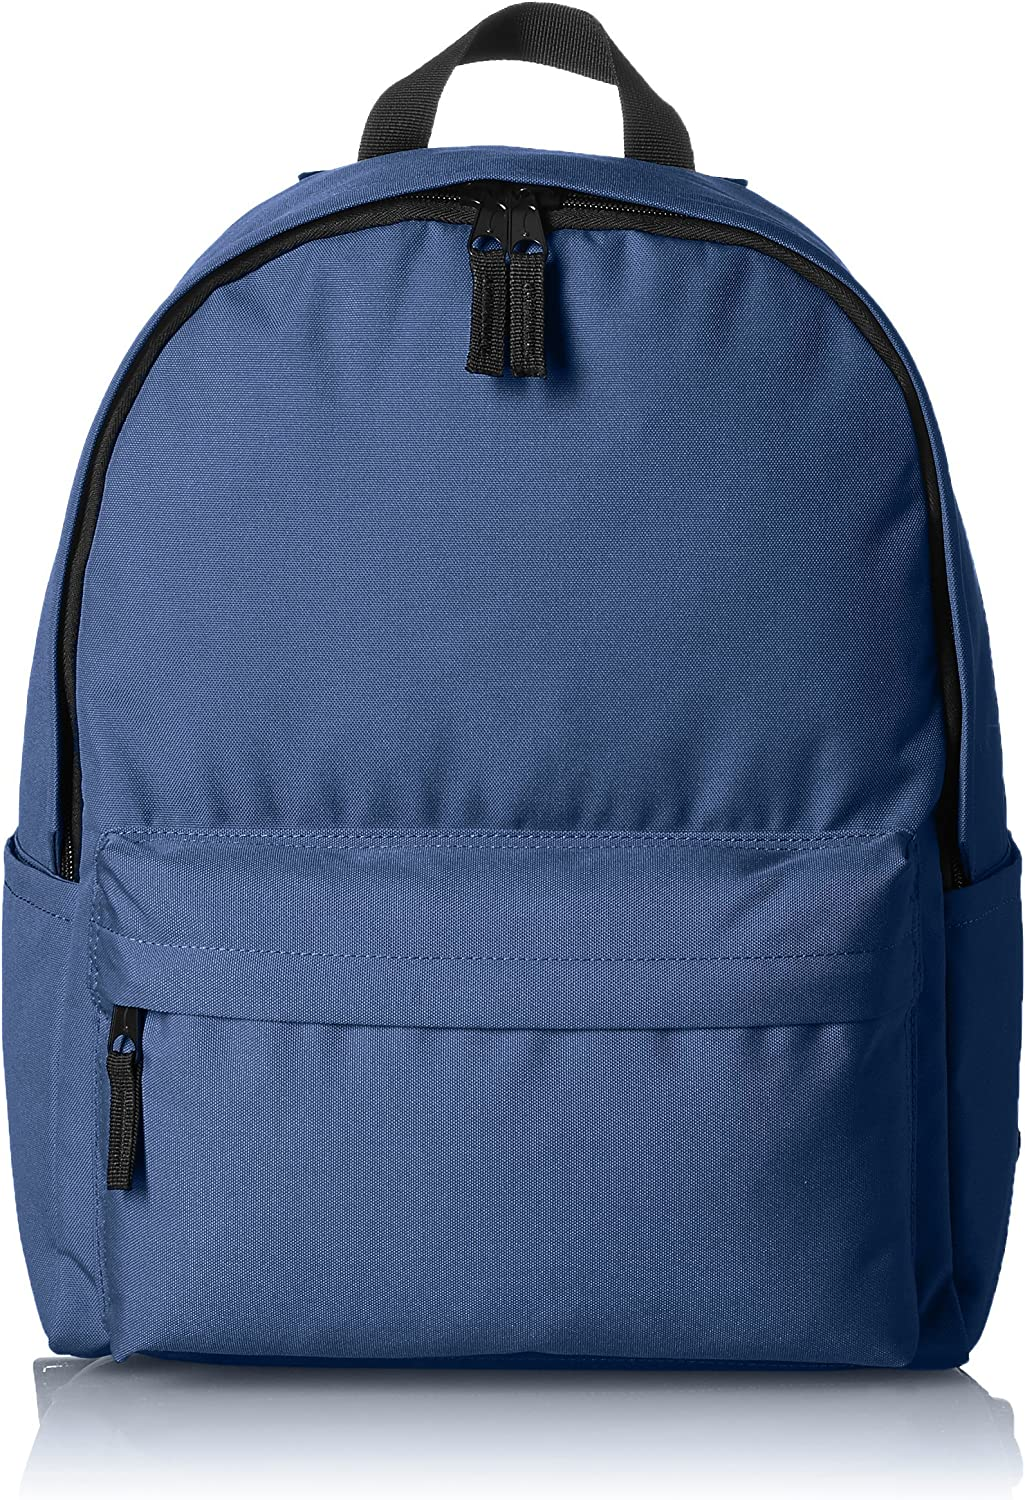 AmazonBasics Classic School Backpack, Navy - 5-Pack